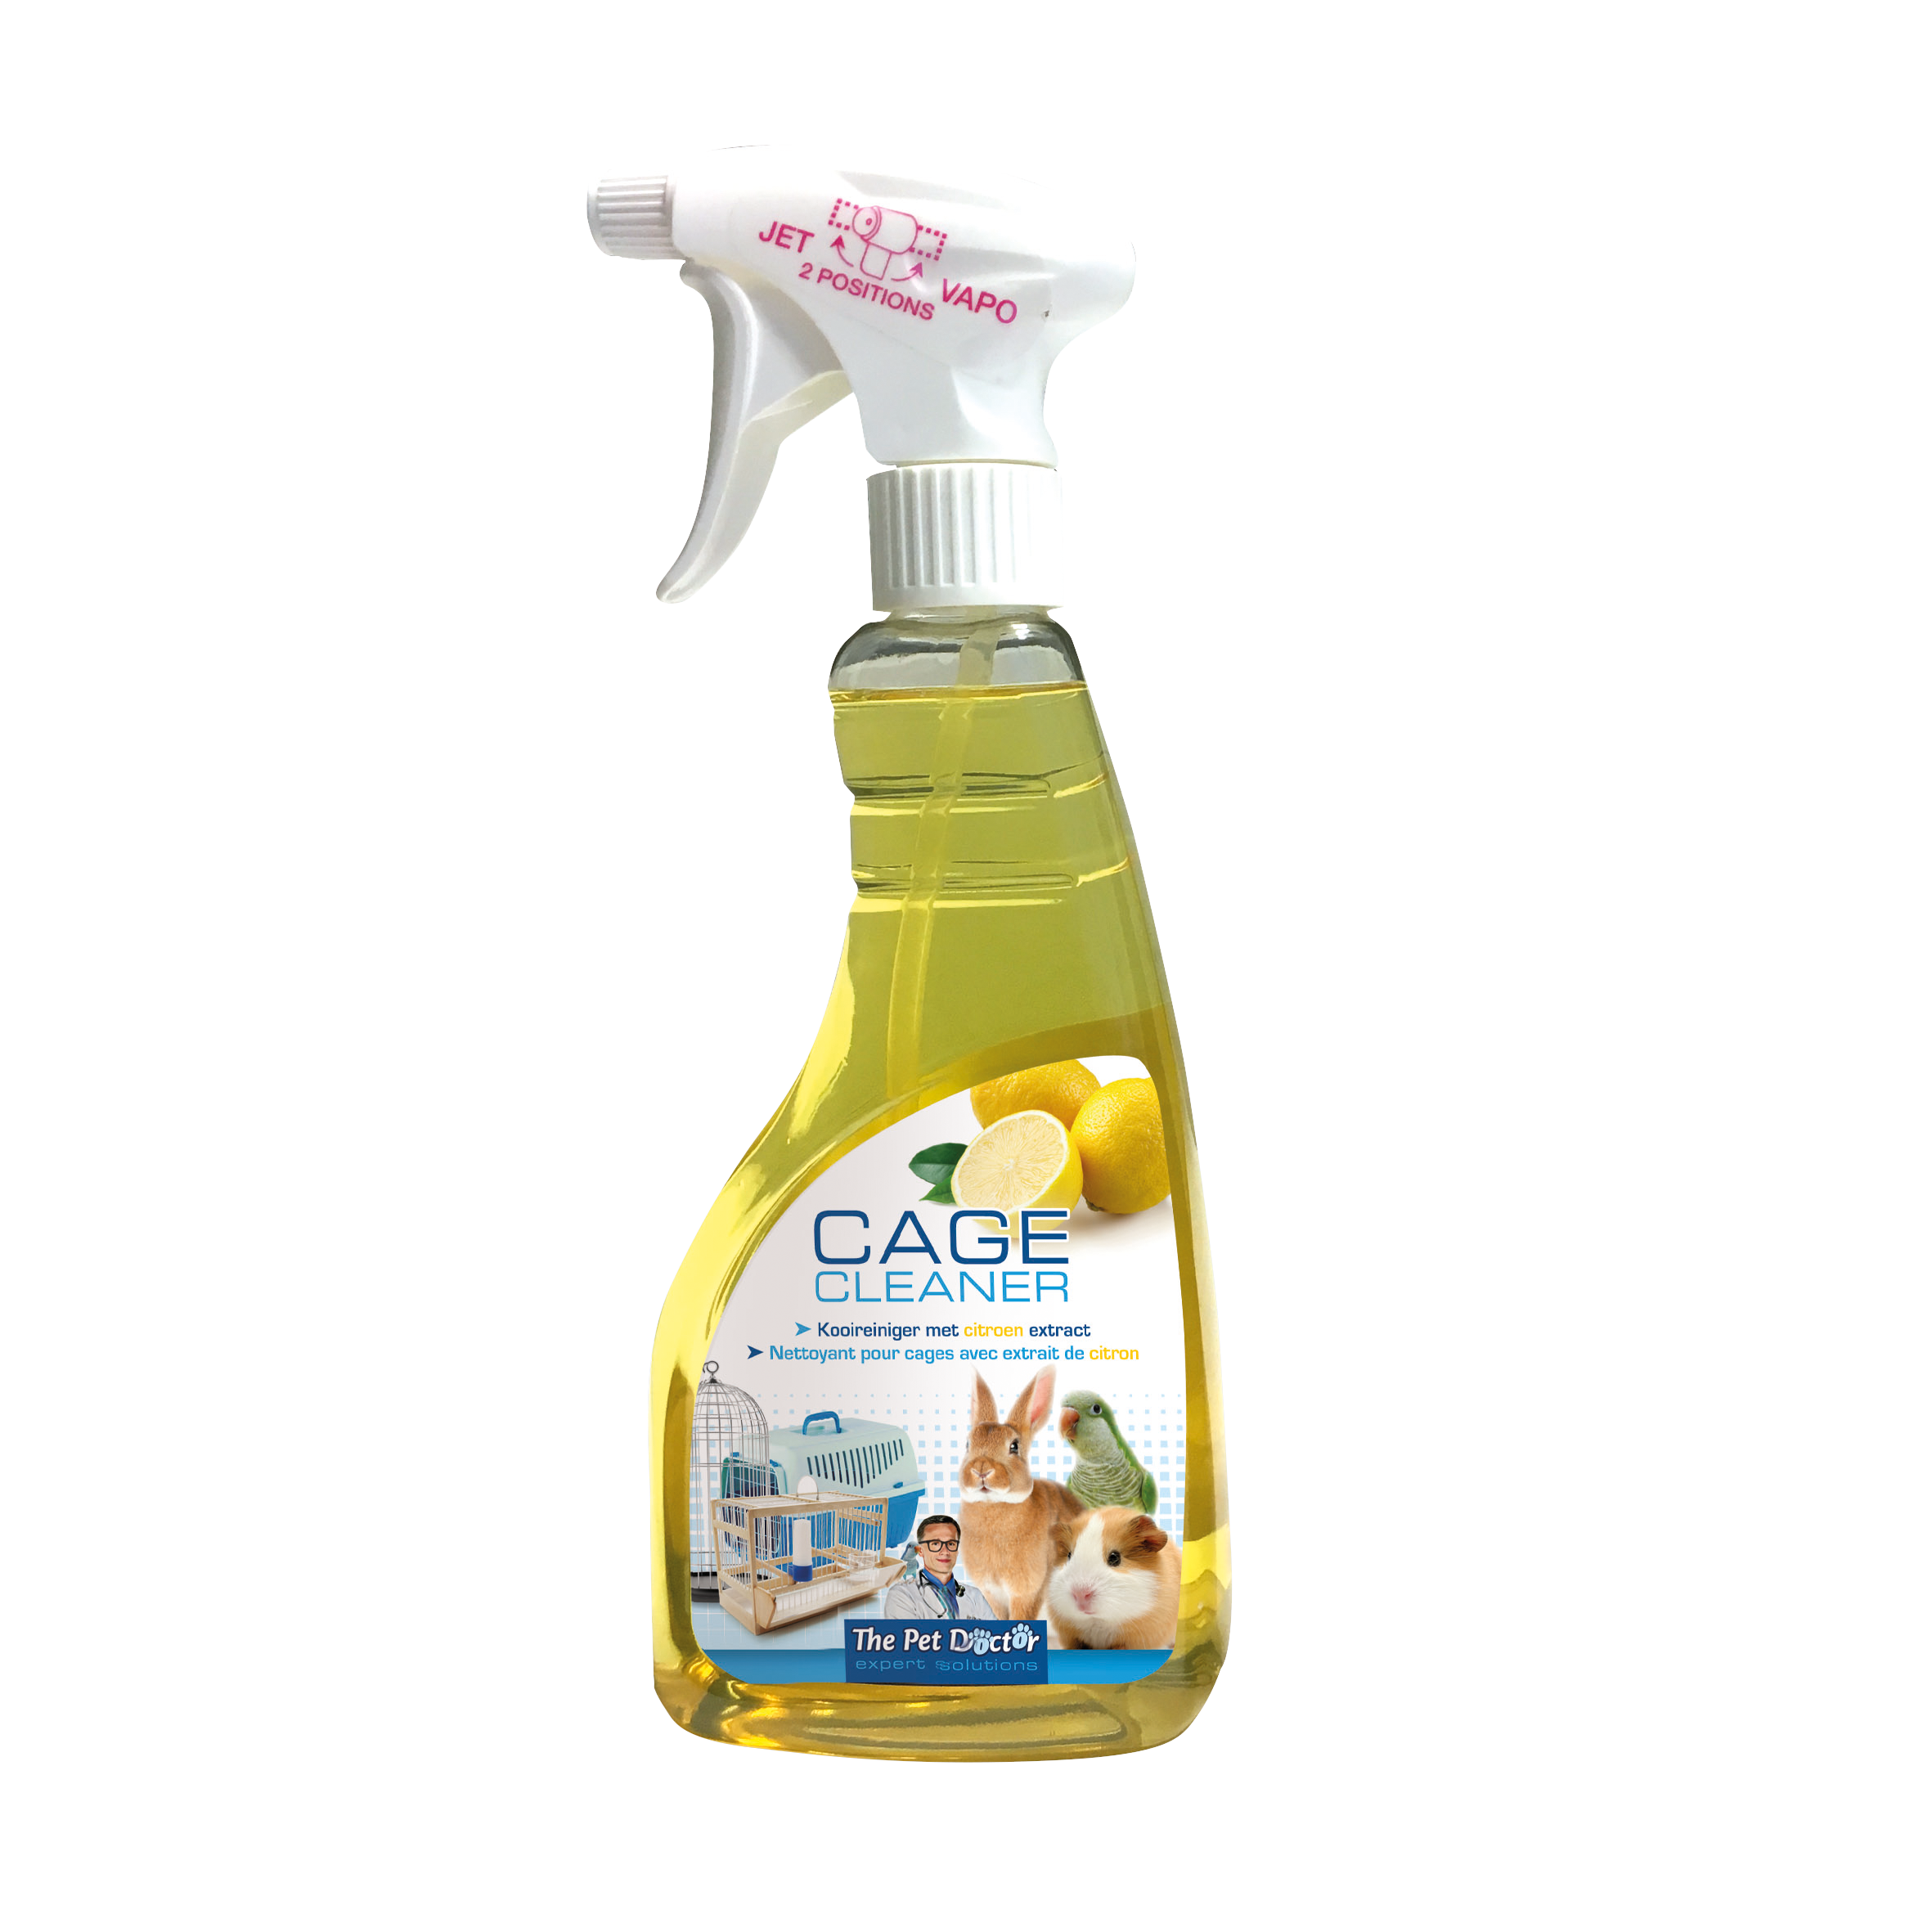 The Pet Doctor Cage Cleaner Citroen 500 ml image